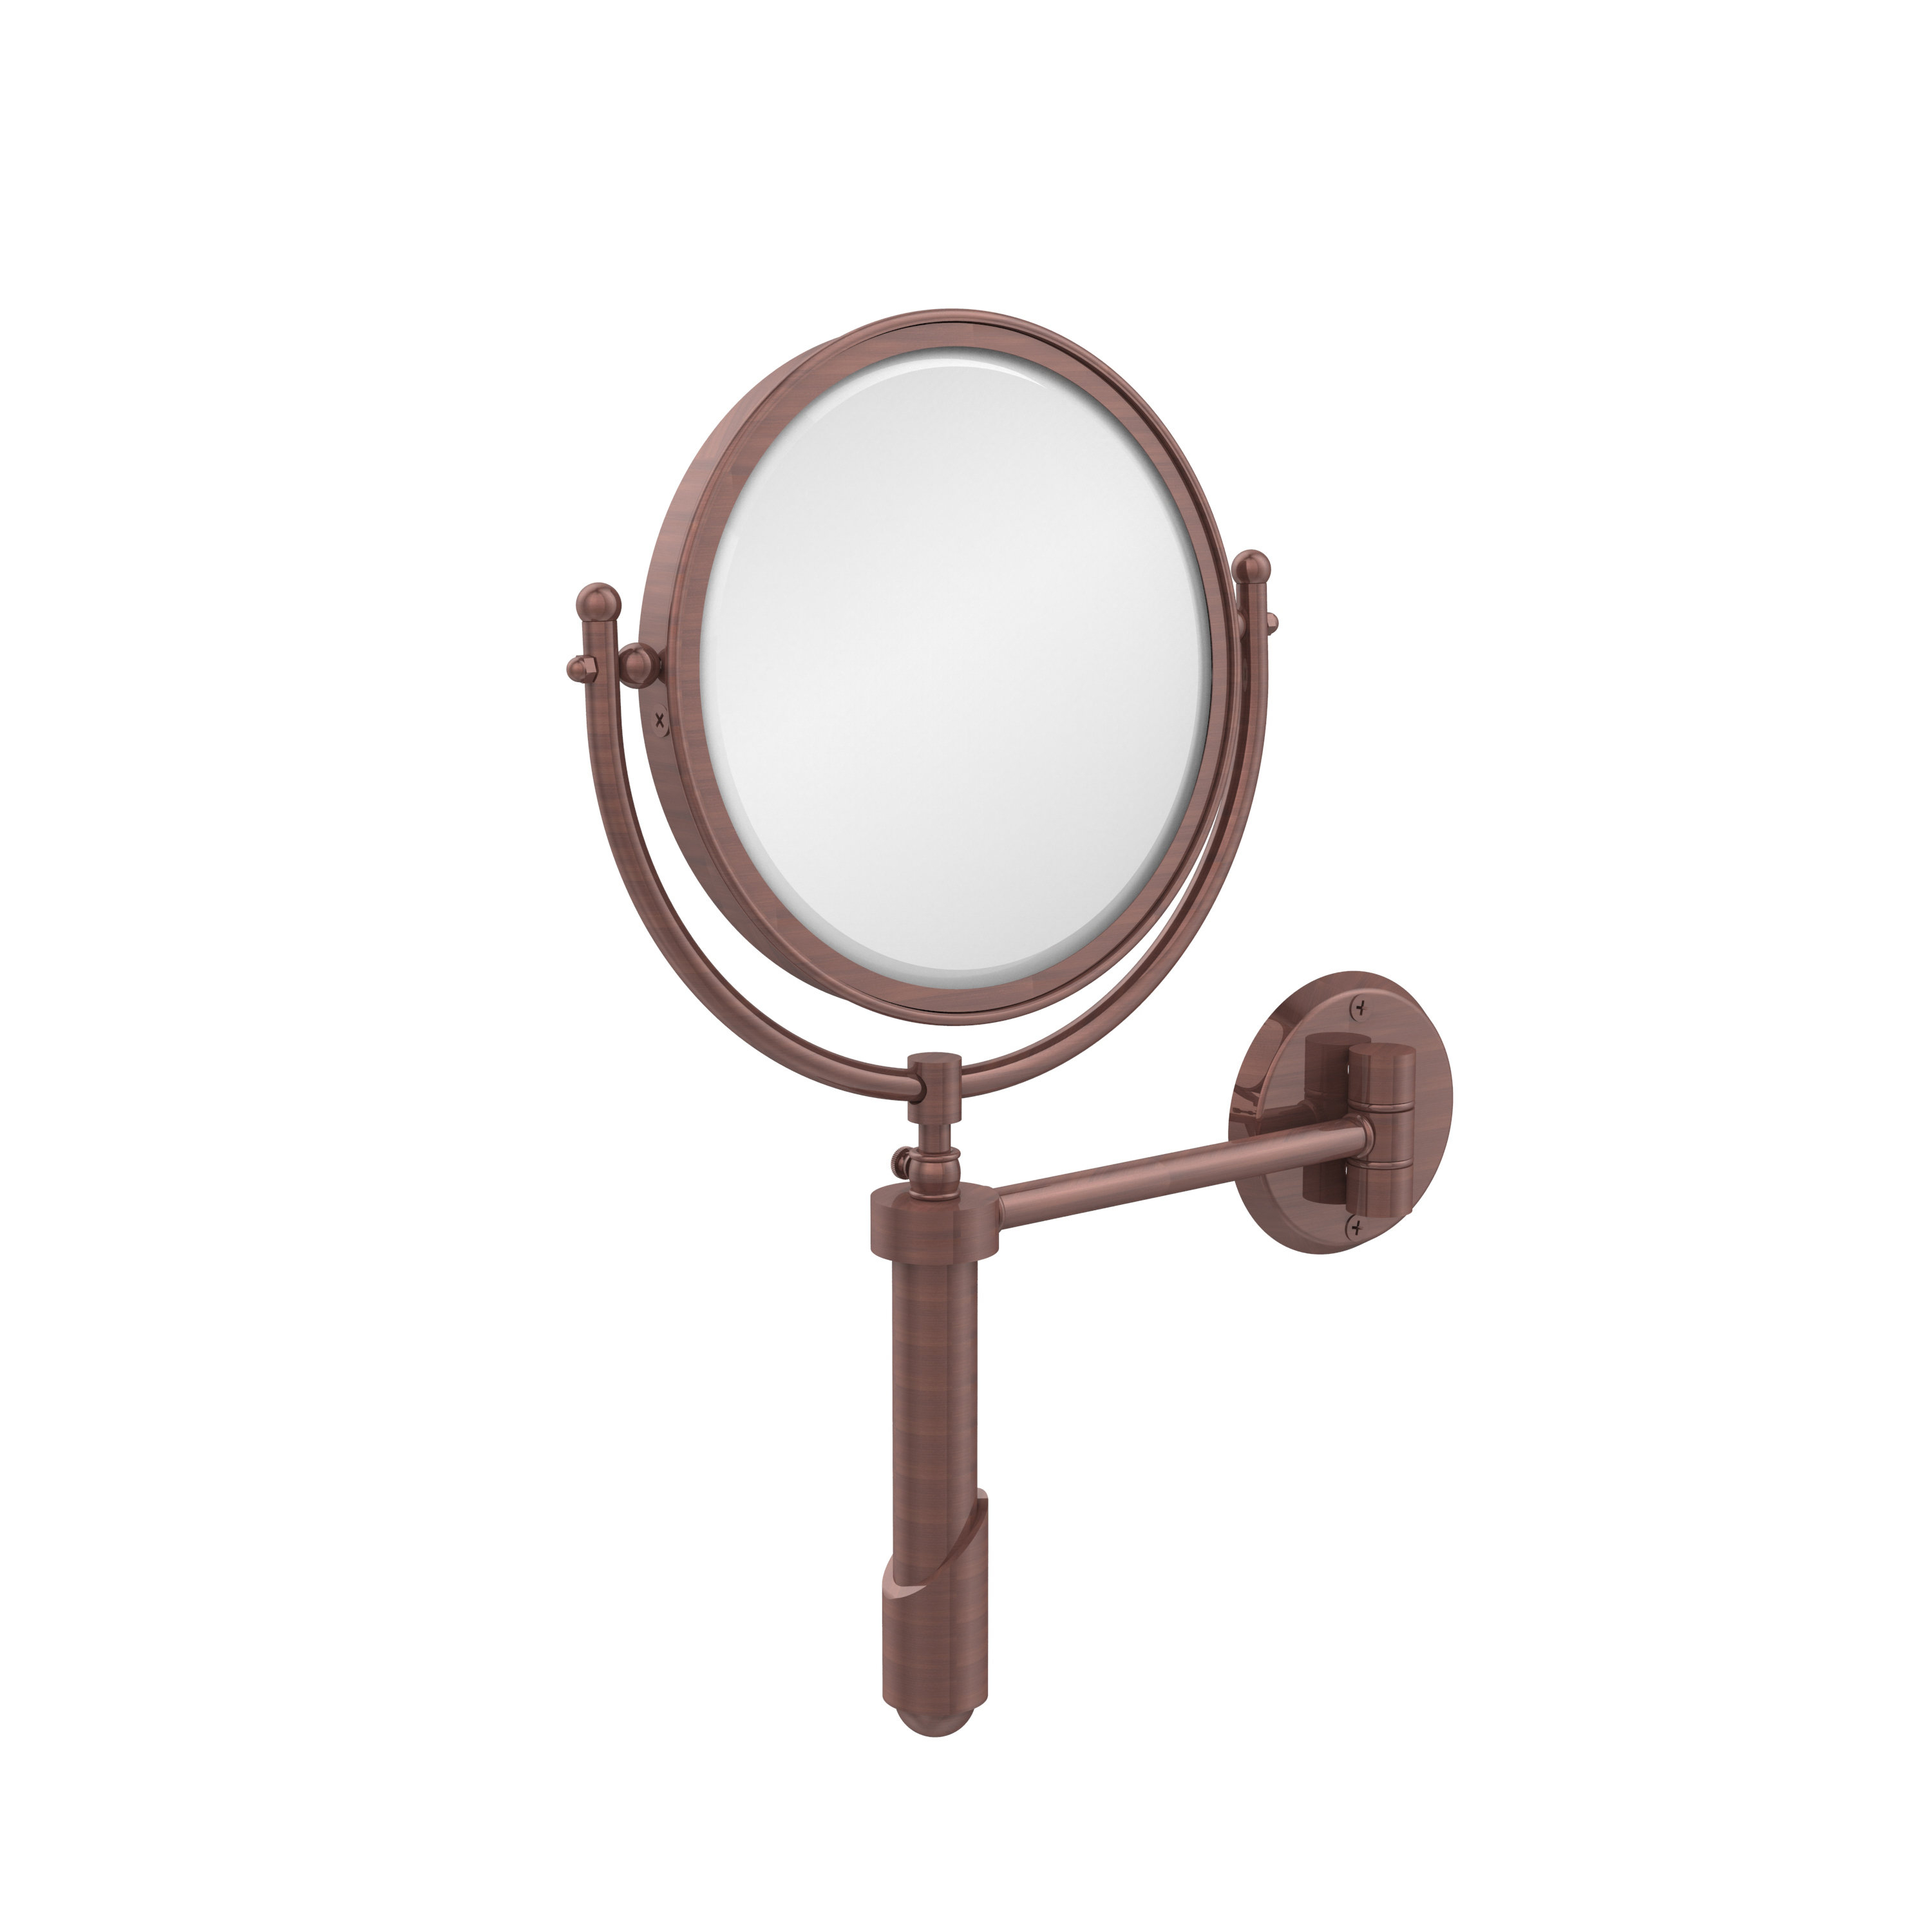 "8"" Extendable Wall Mirror With Magnification Pertaining To Well Known Extendable Wall Mirrors (Gallery 19 of 20)"